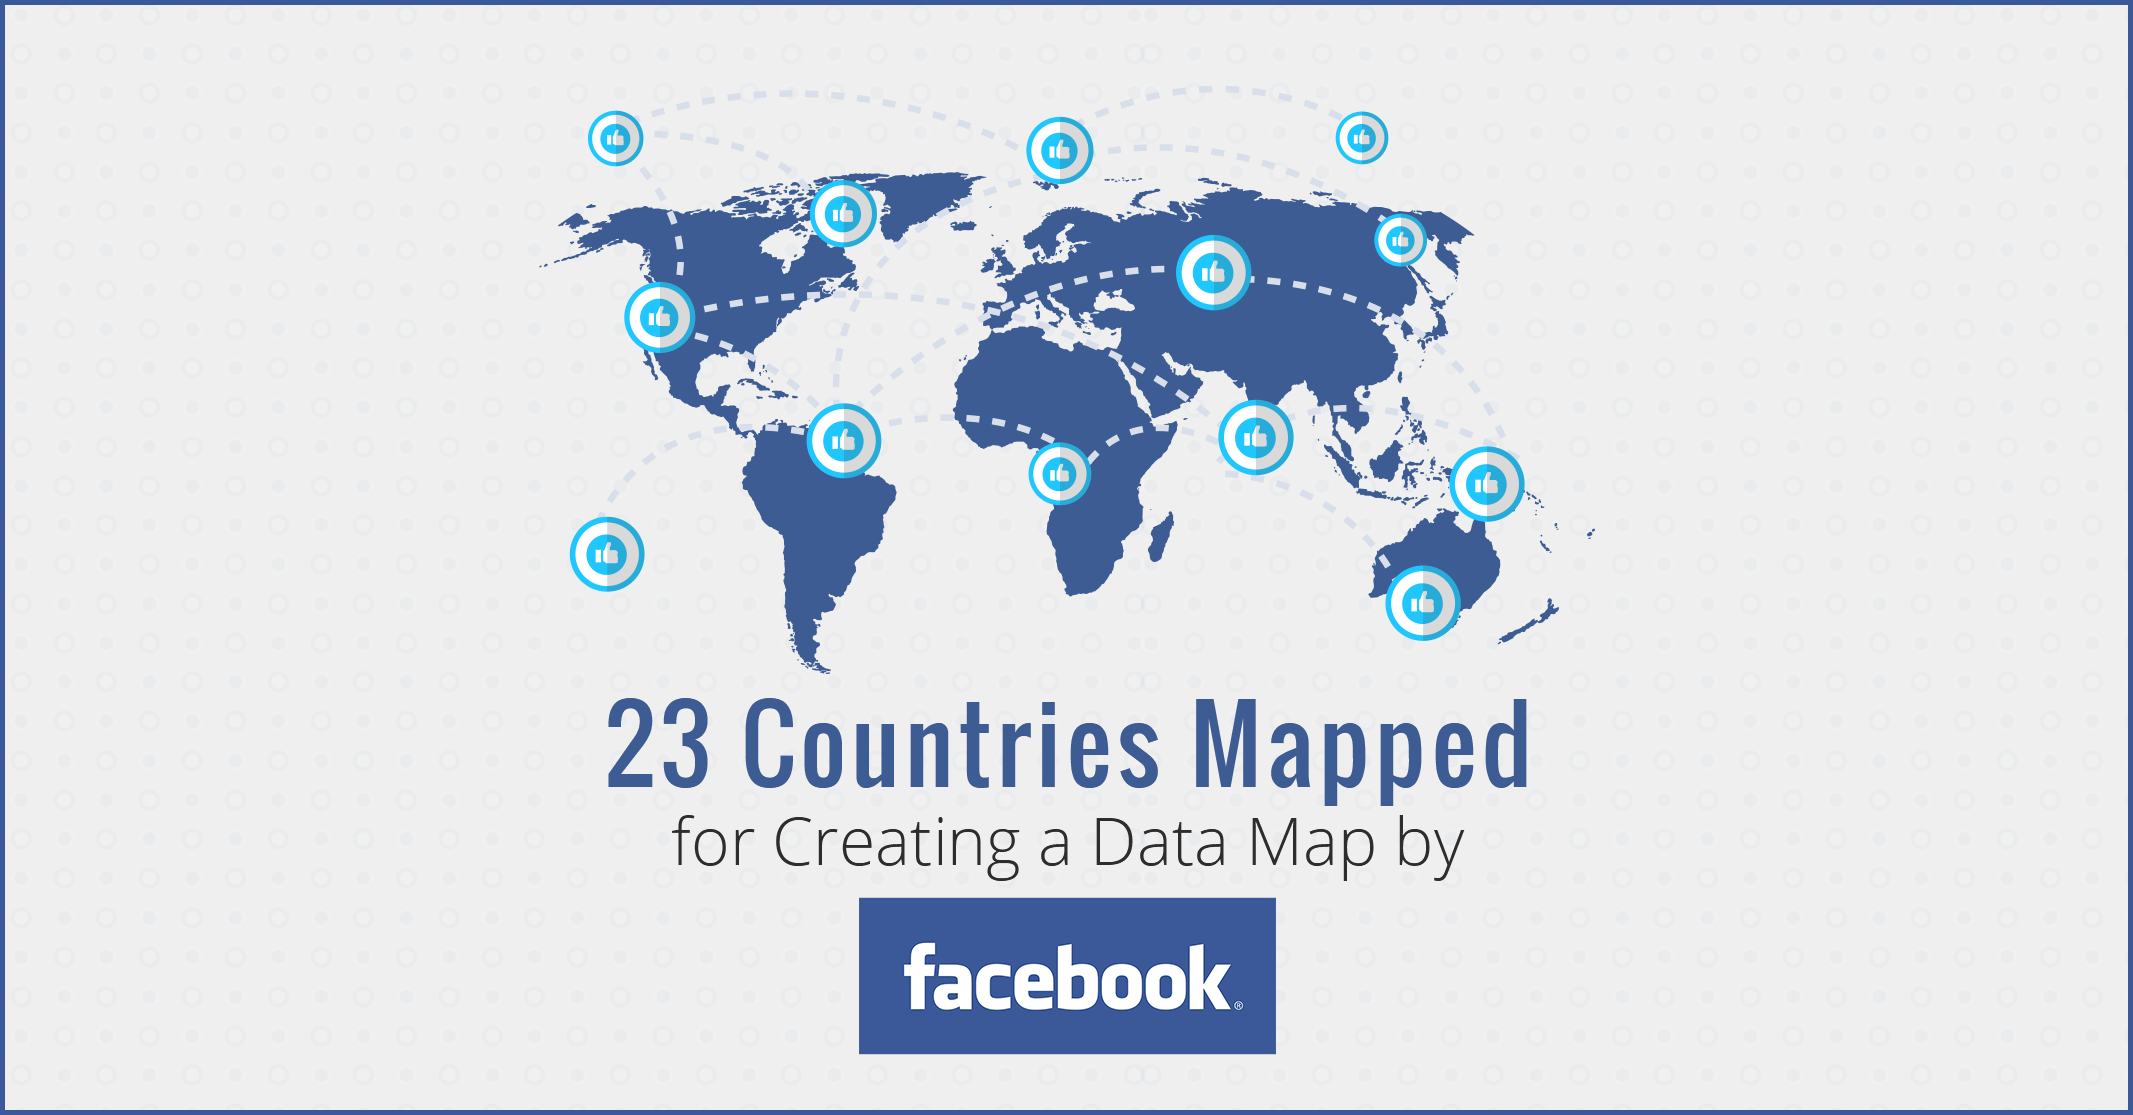 New space economy: Facebook's sky-mapping 23 countries can lead us into a new space economy